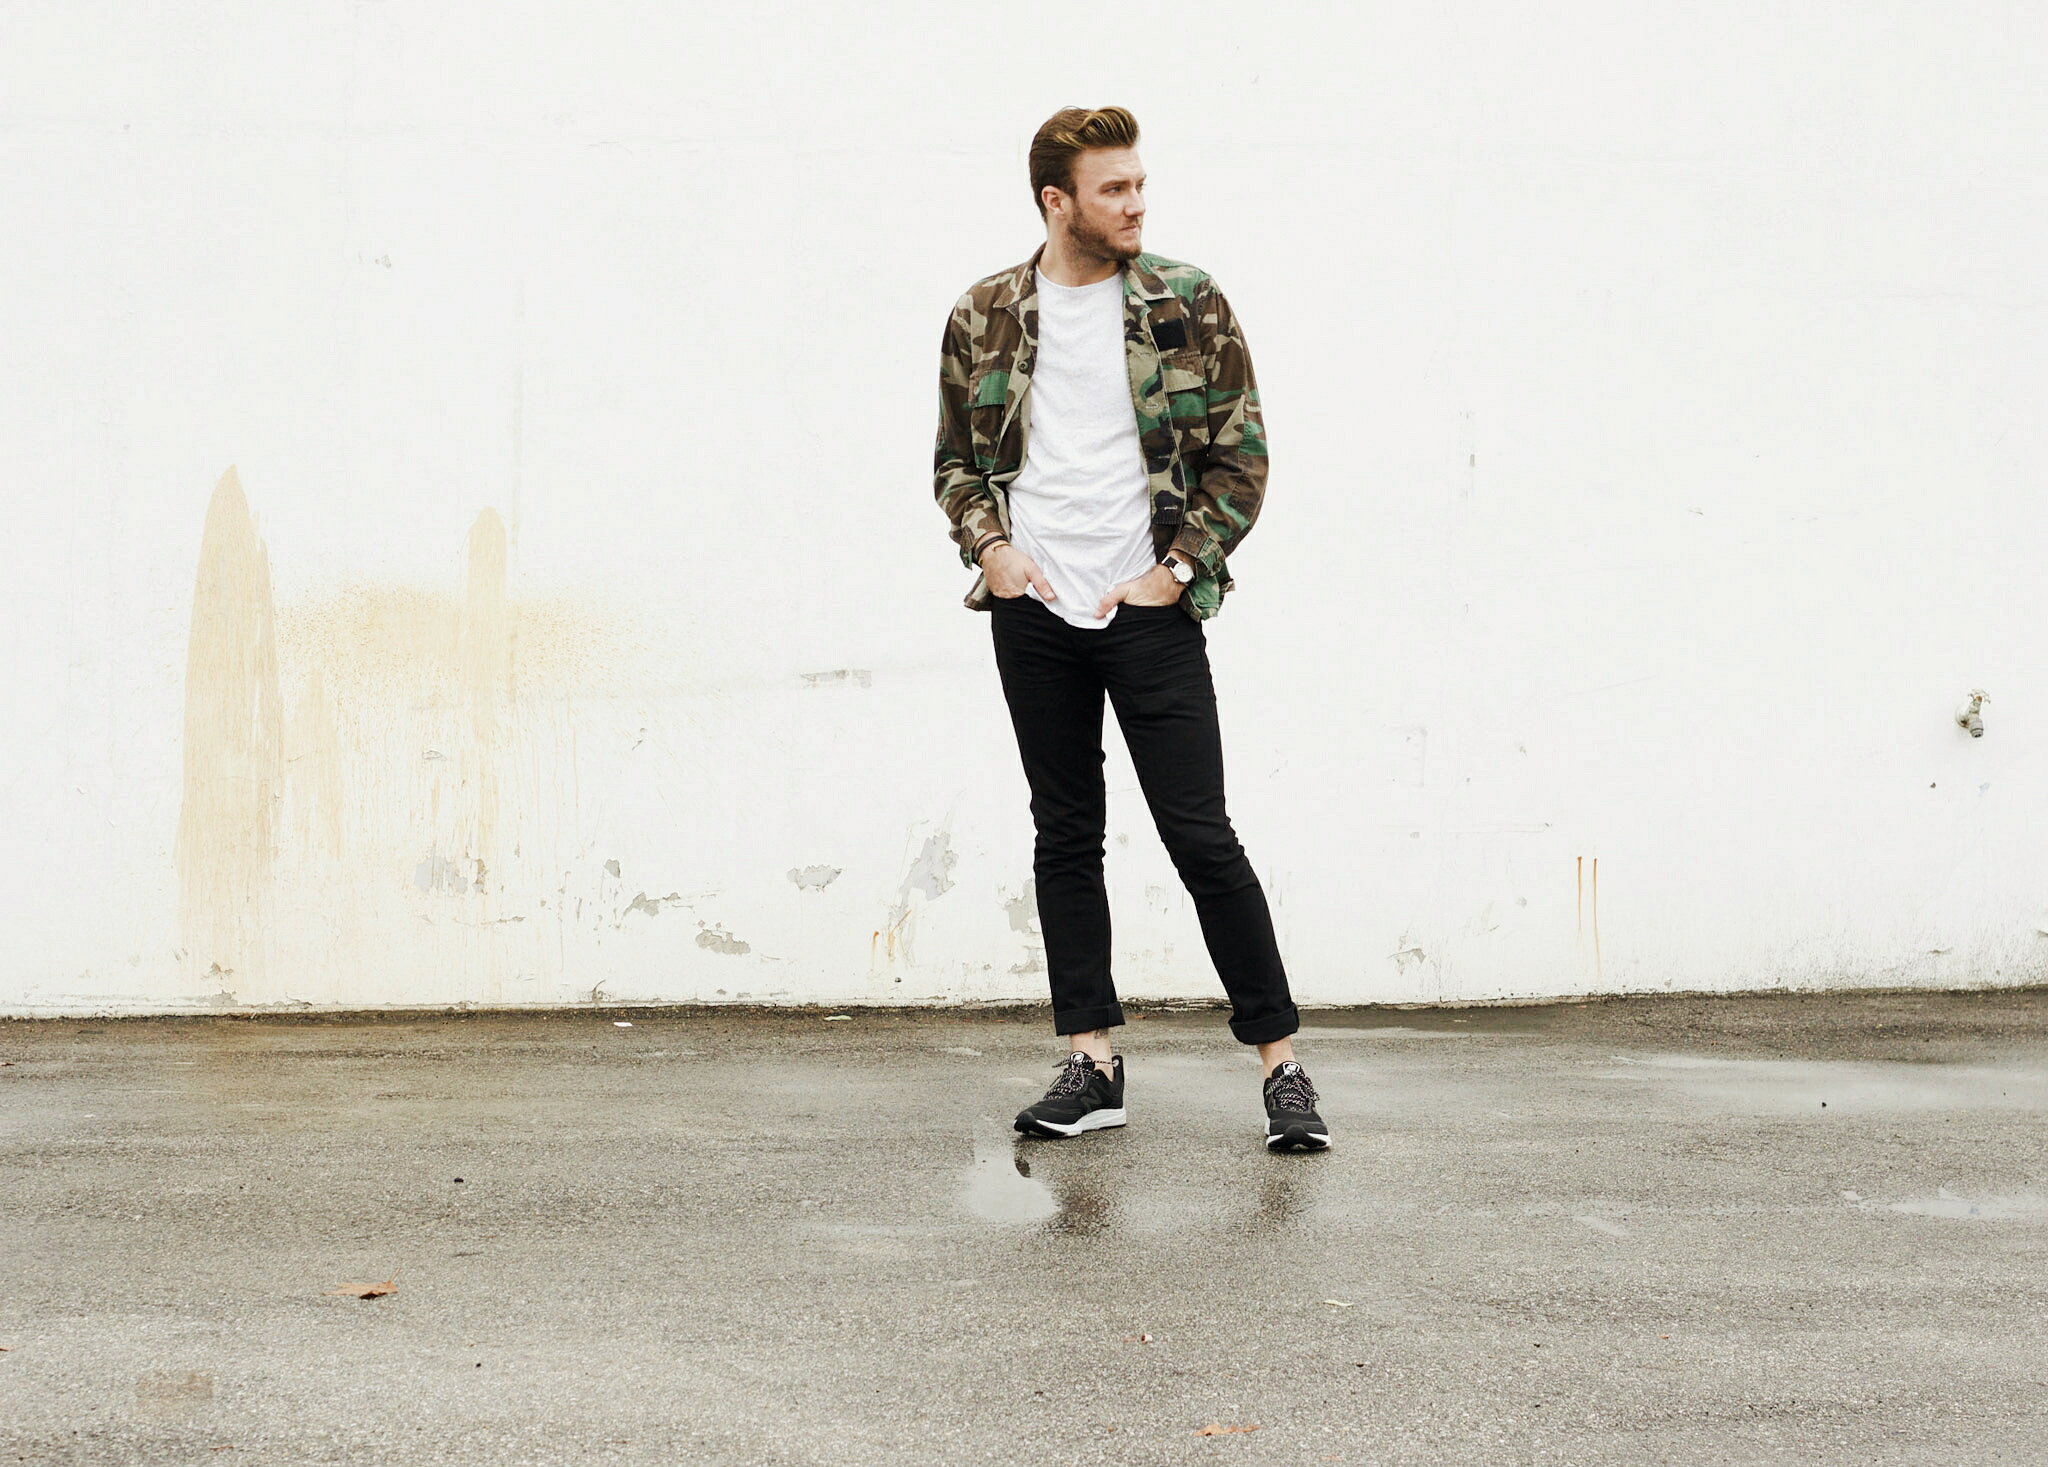 Vintage Camo Jacket and Sneakers 3